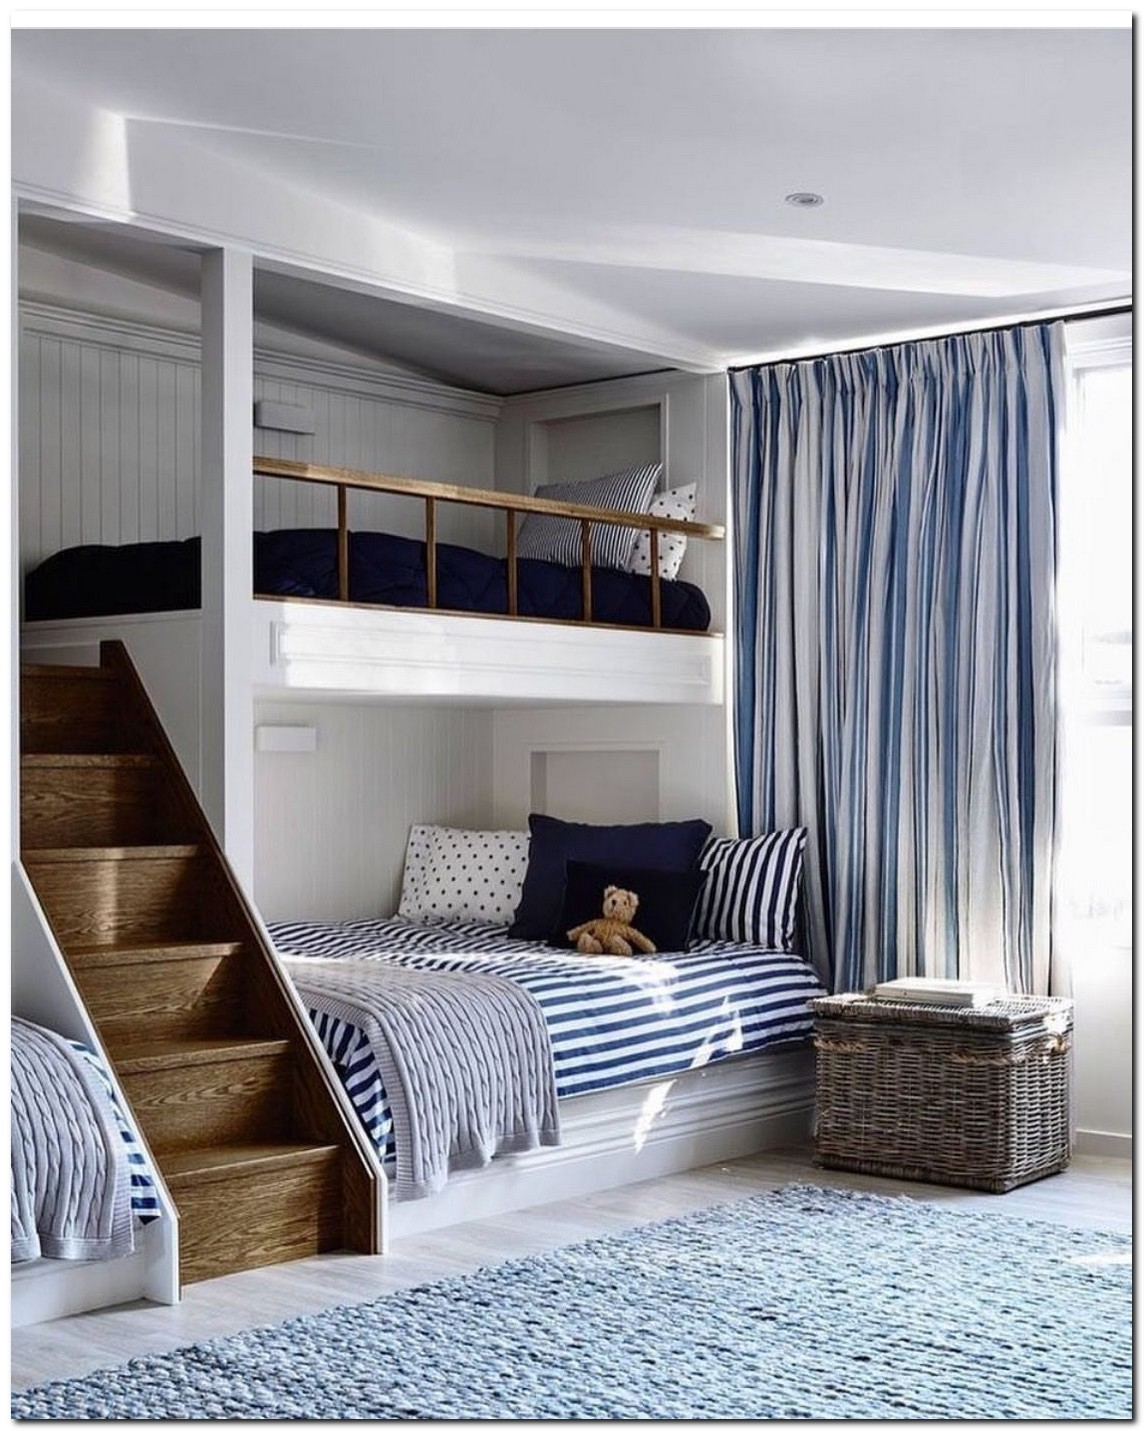 How to successfully choose bunk beds for kids 13